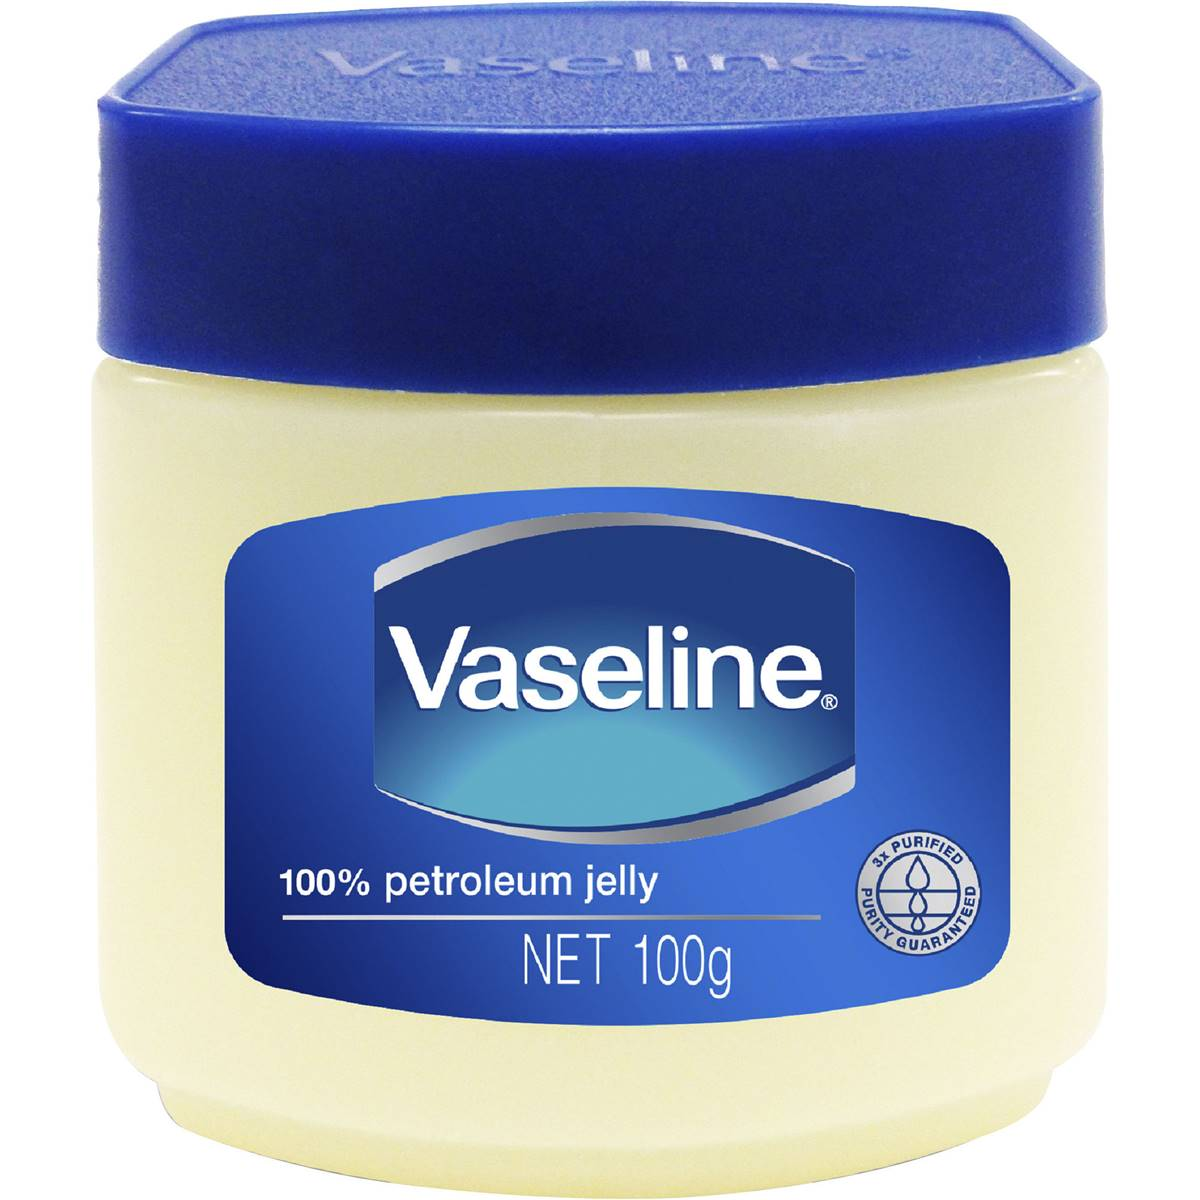 Image result for vaseline